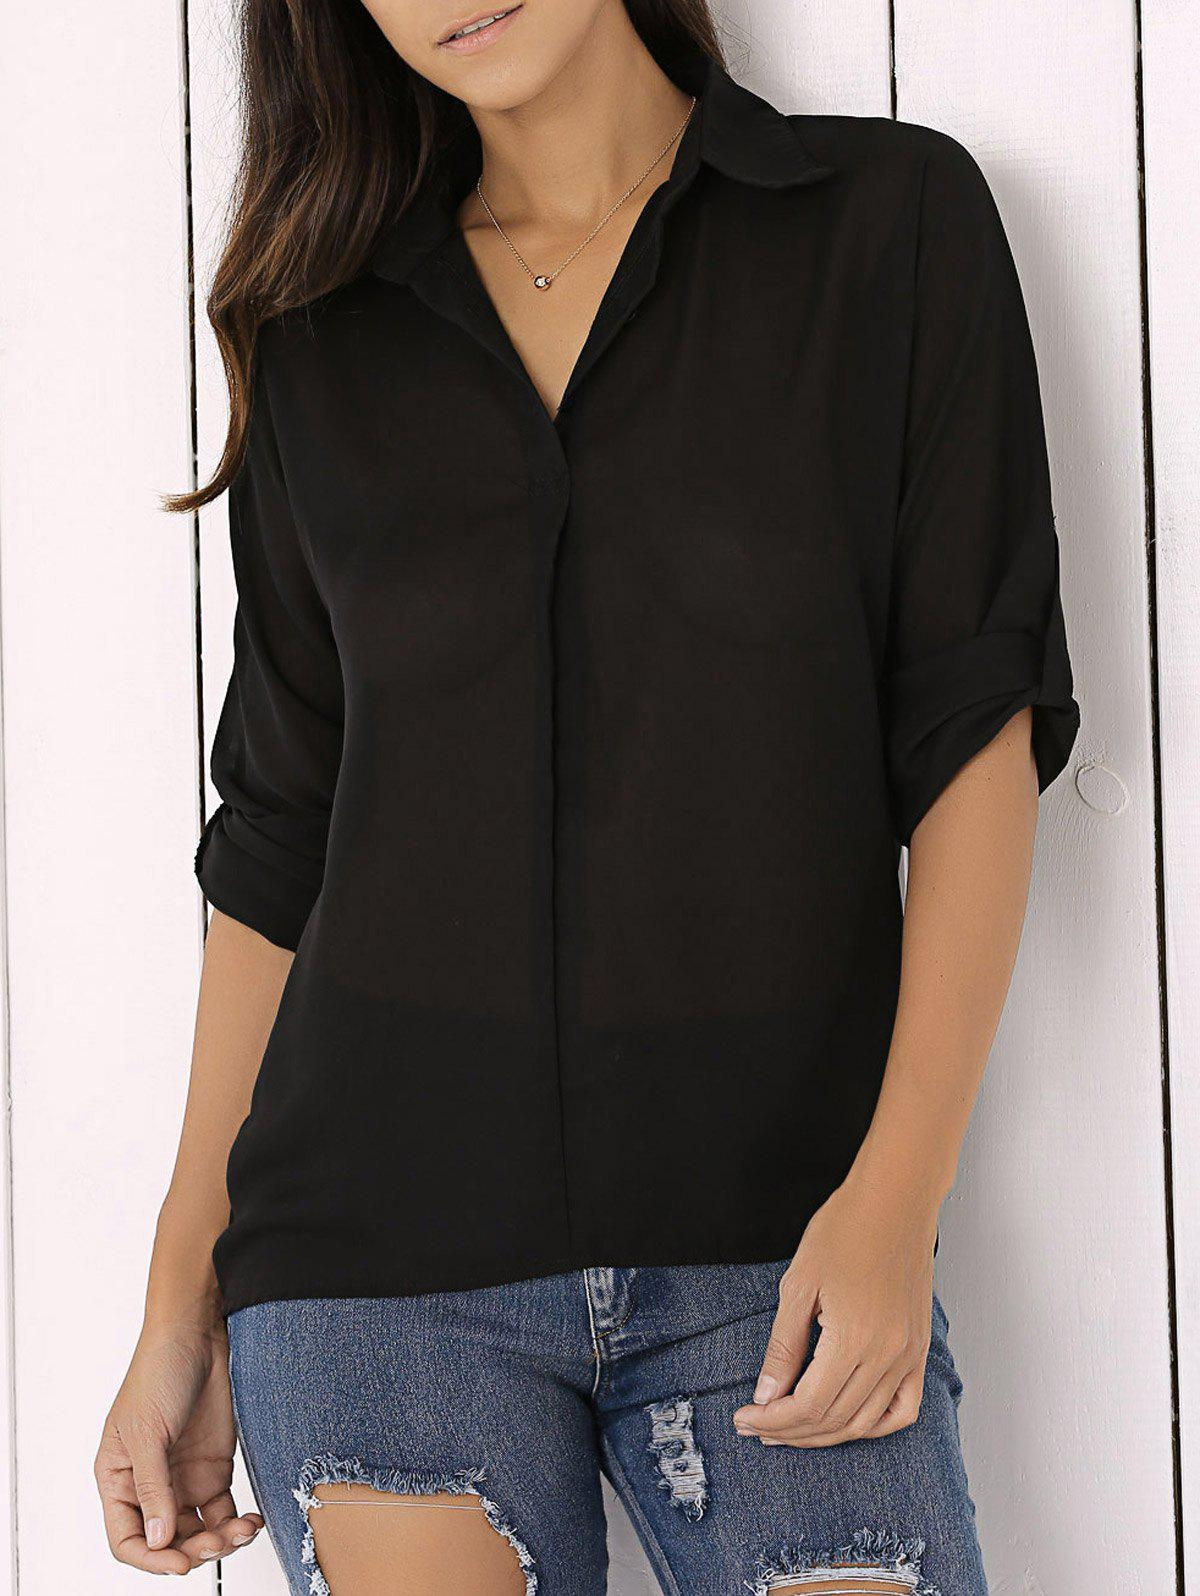 Long Sleeve Chiffon Button Up Casual Tunic ShirtWOMEN<br><br>Size: 2XL; Color: BLACK; Style: Casual; Material: Polyester; Fabric Type: Chiffon; Shirt Length: Long; Sleeve Length: Full; Collar: Shirt Collar; Pattern Type: Solid; Season: Fall,Spring,Summer,Winter; Weight: 0.161kg; Package Contents: 1 x Shirt;